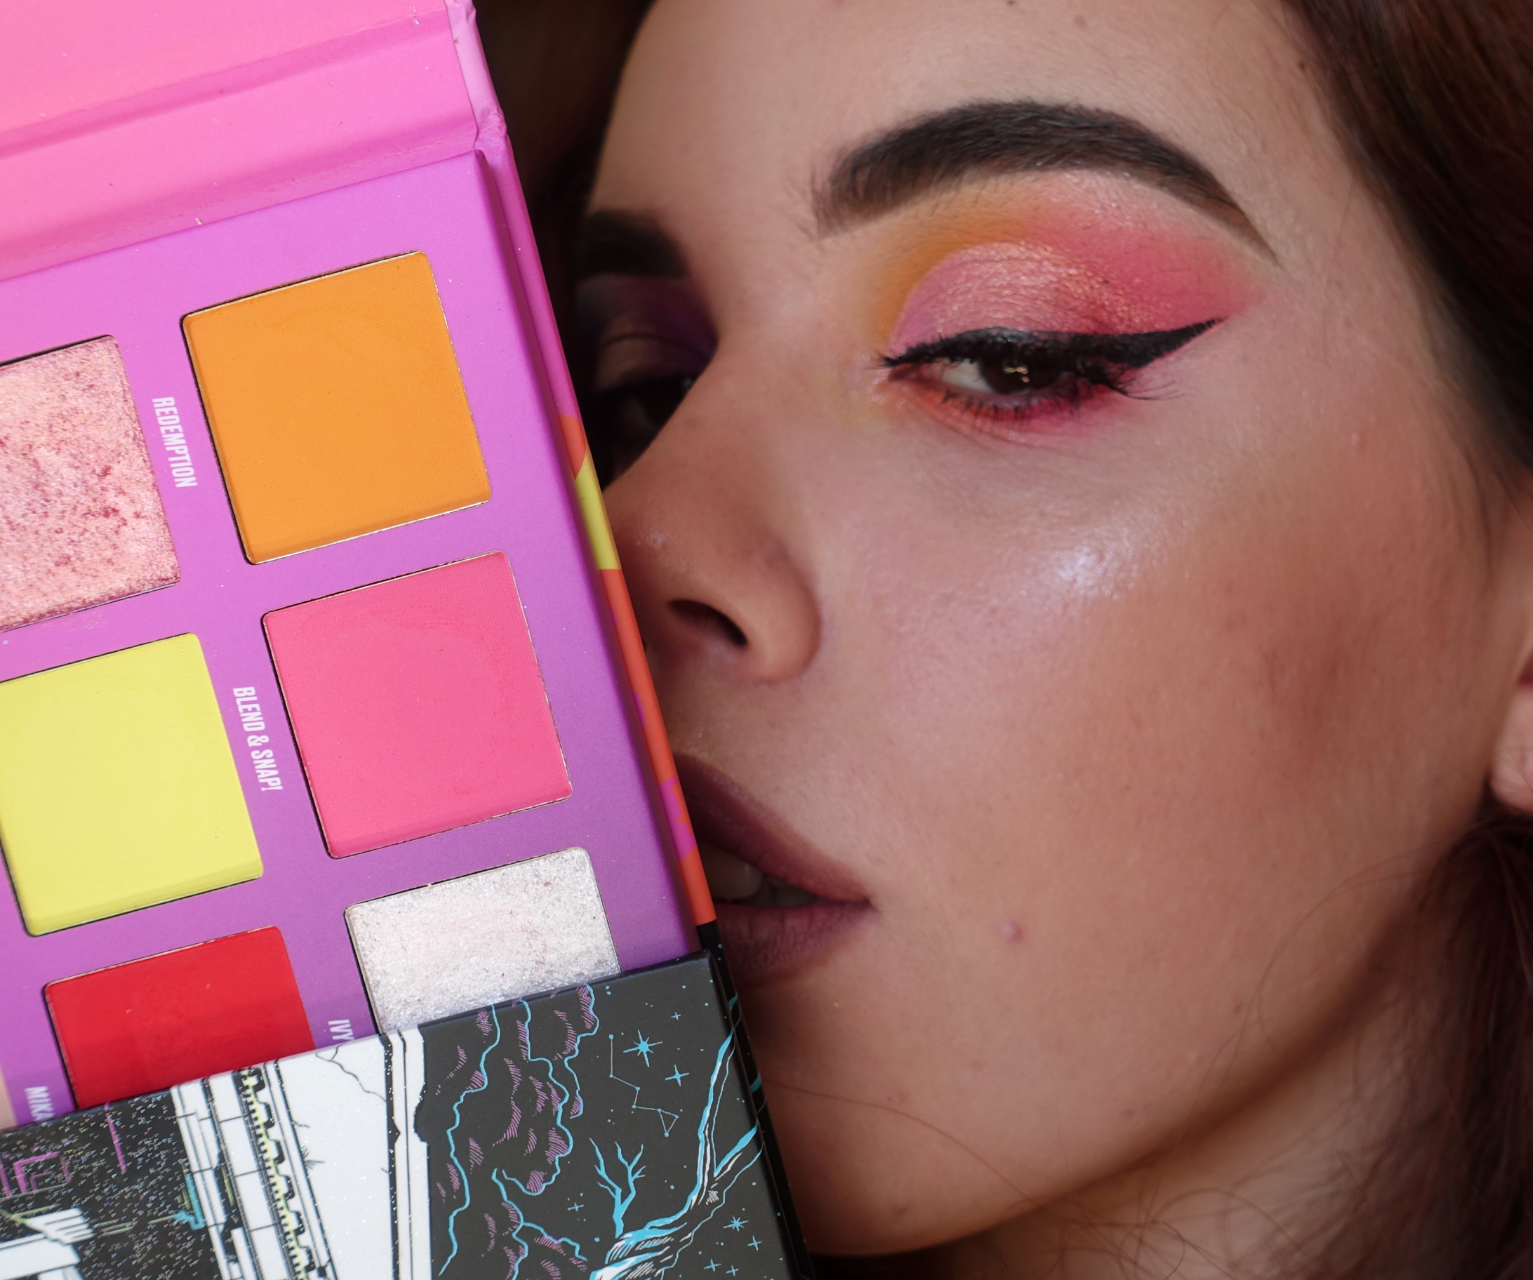 Nikkie Tutorials x Beauty Bay Pressed Pigment Eyeshadow Palette Review & Looks